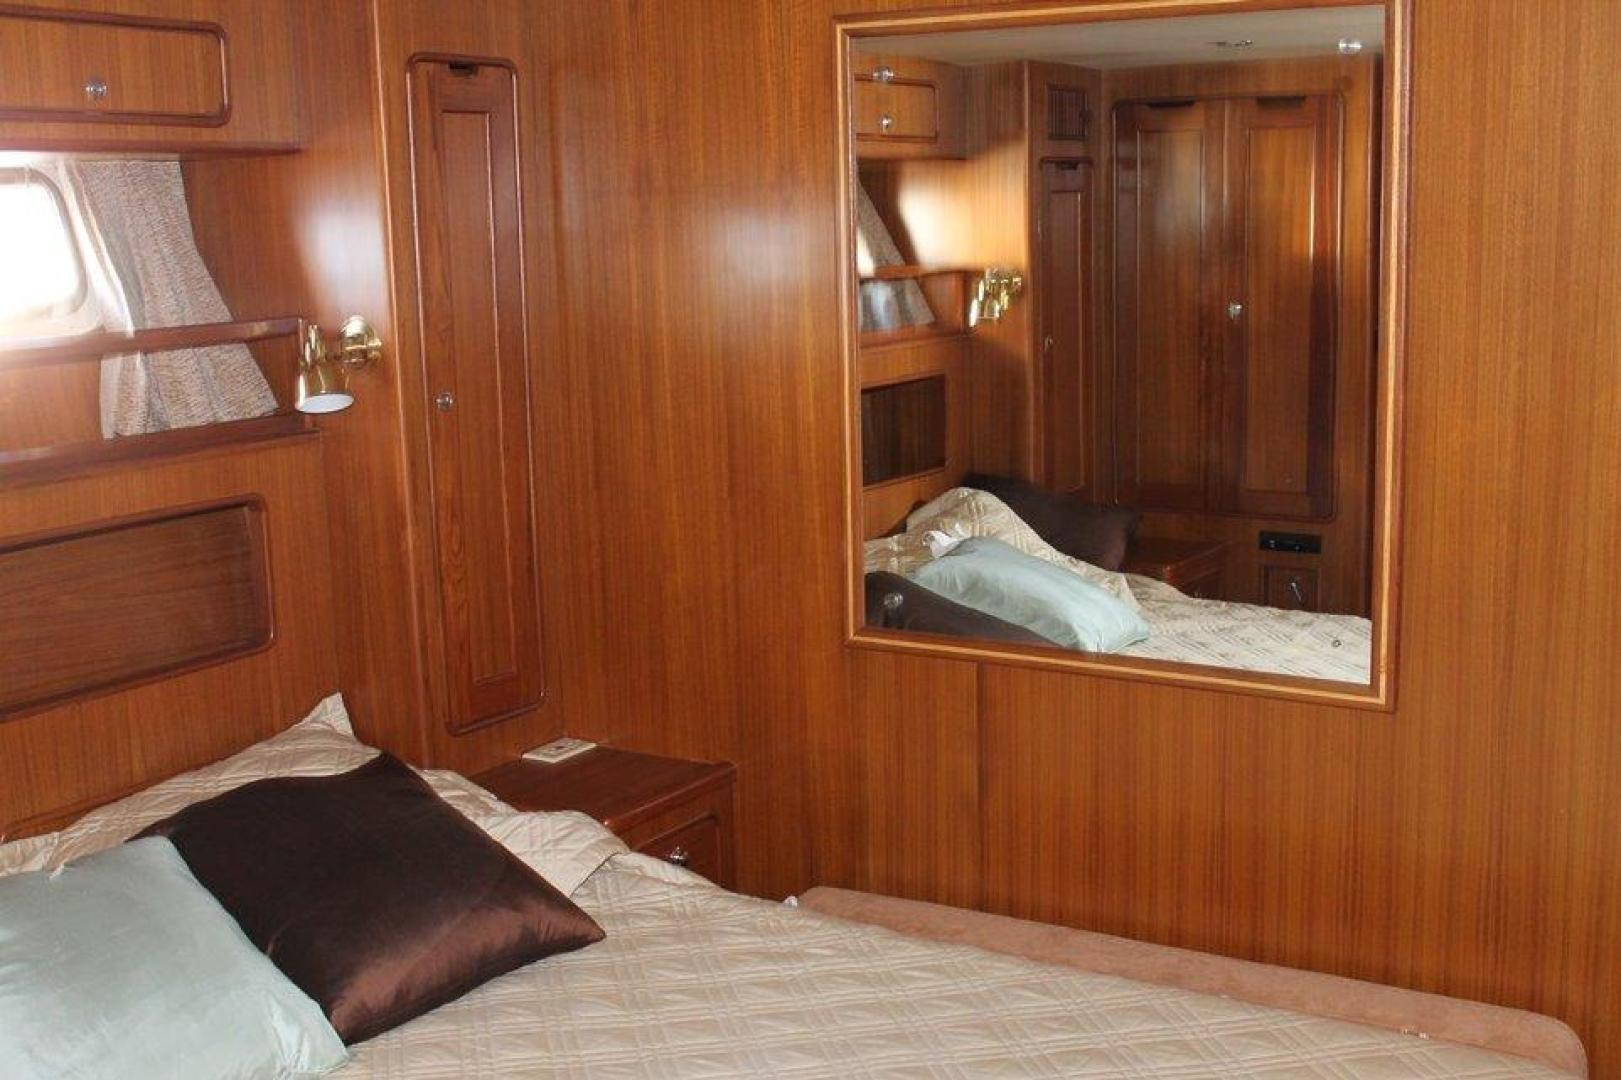 Integrity-496 Trawler 2007-Pier Pressure V St. Johns-Newfoundland And Labrador-Canada-Master Stateroom-920697 | Thumbnail